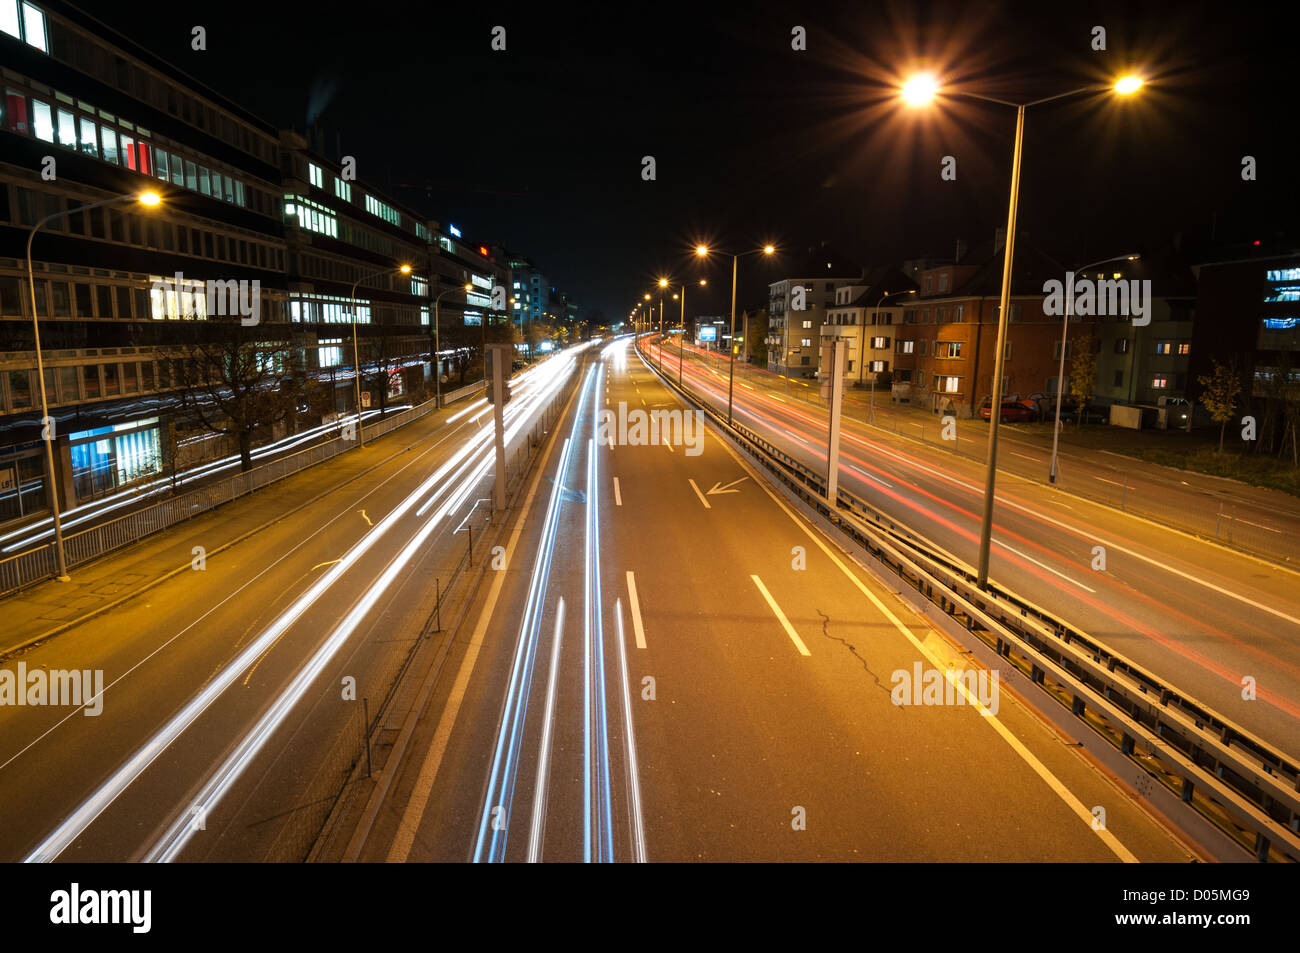 Traffic trails at night in Zurich suburbs. - Stock Image